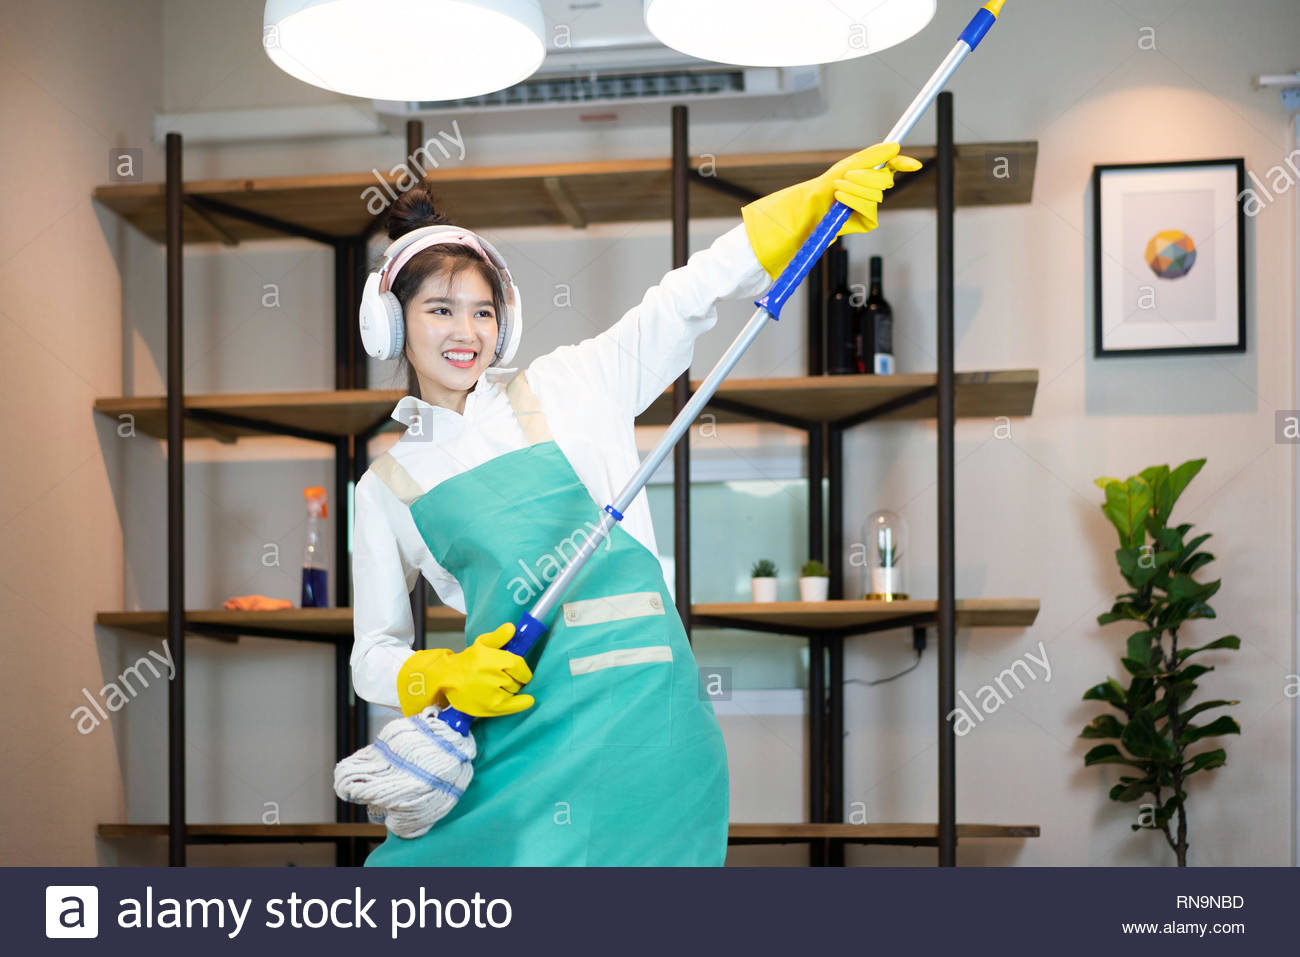 Happy woman cleaning home, singing at mop like at microphone and having fun - Stock Image